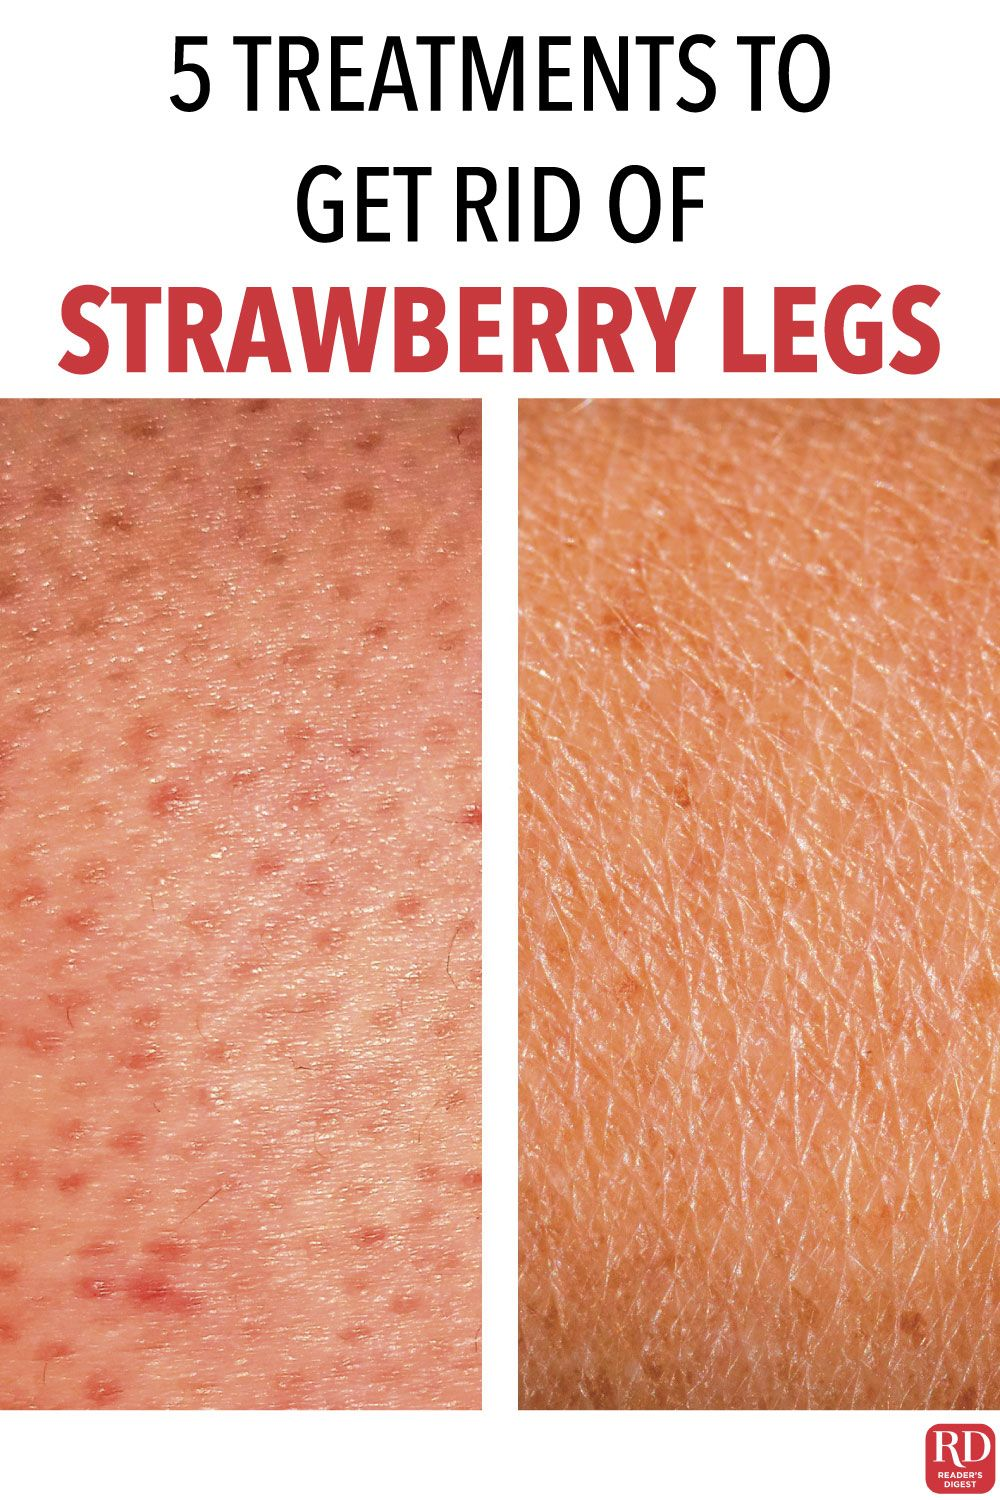 2a64fd25f083889d2ec0e09f2379b829 - How To Get Rid Of Strawberry Spots On Legs